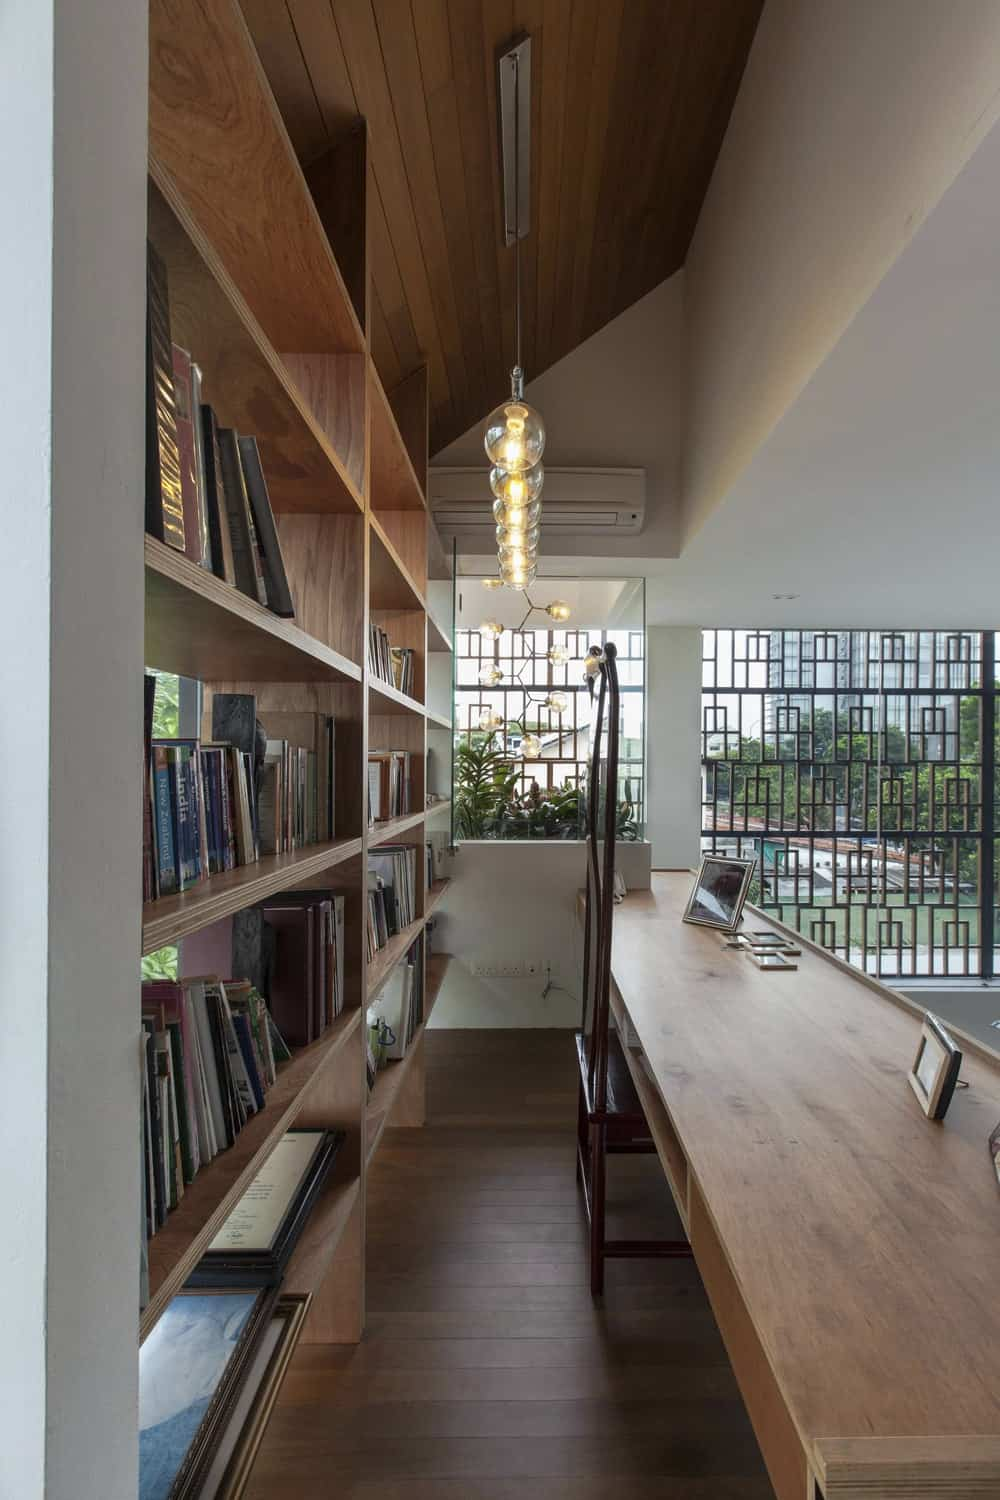 This is the home office and study area with a large wooden built-in desk that pairs well with the large wooden structure with shelves behind it.